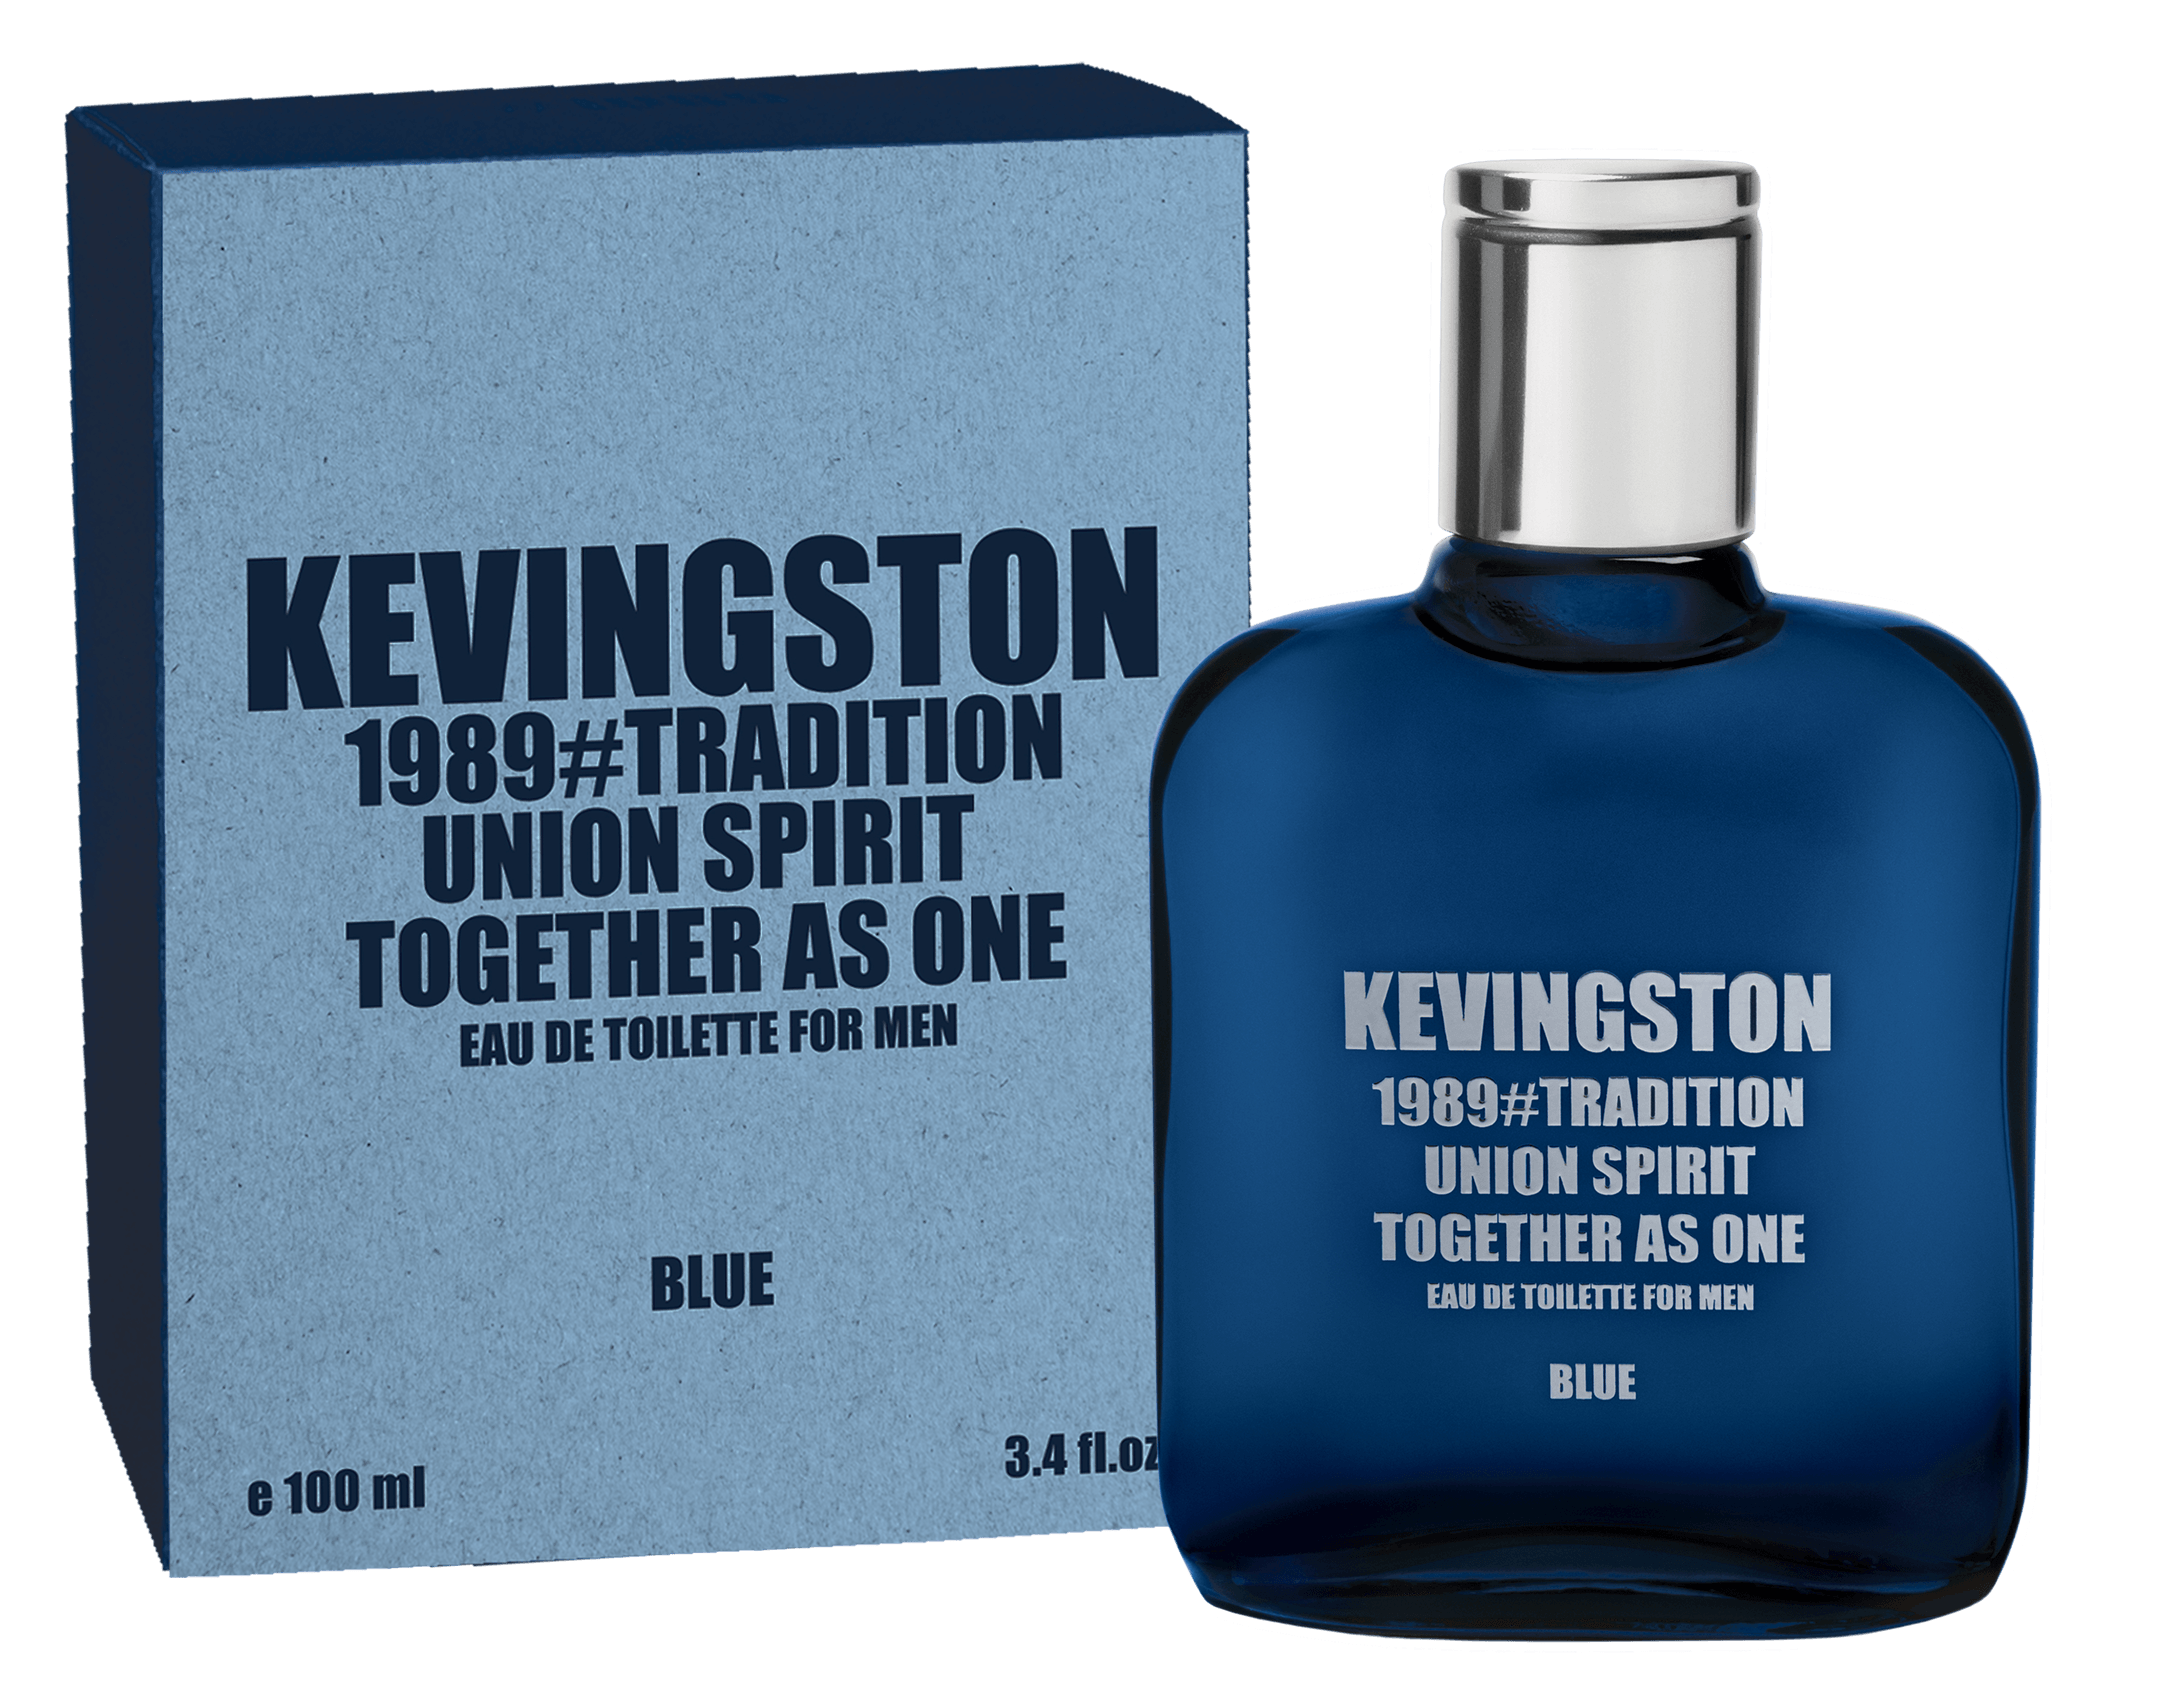 KVN BLUE_FRASCO 1989 BLUE 100 ml